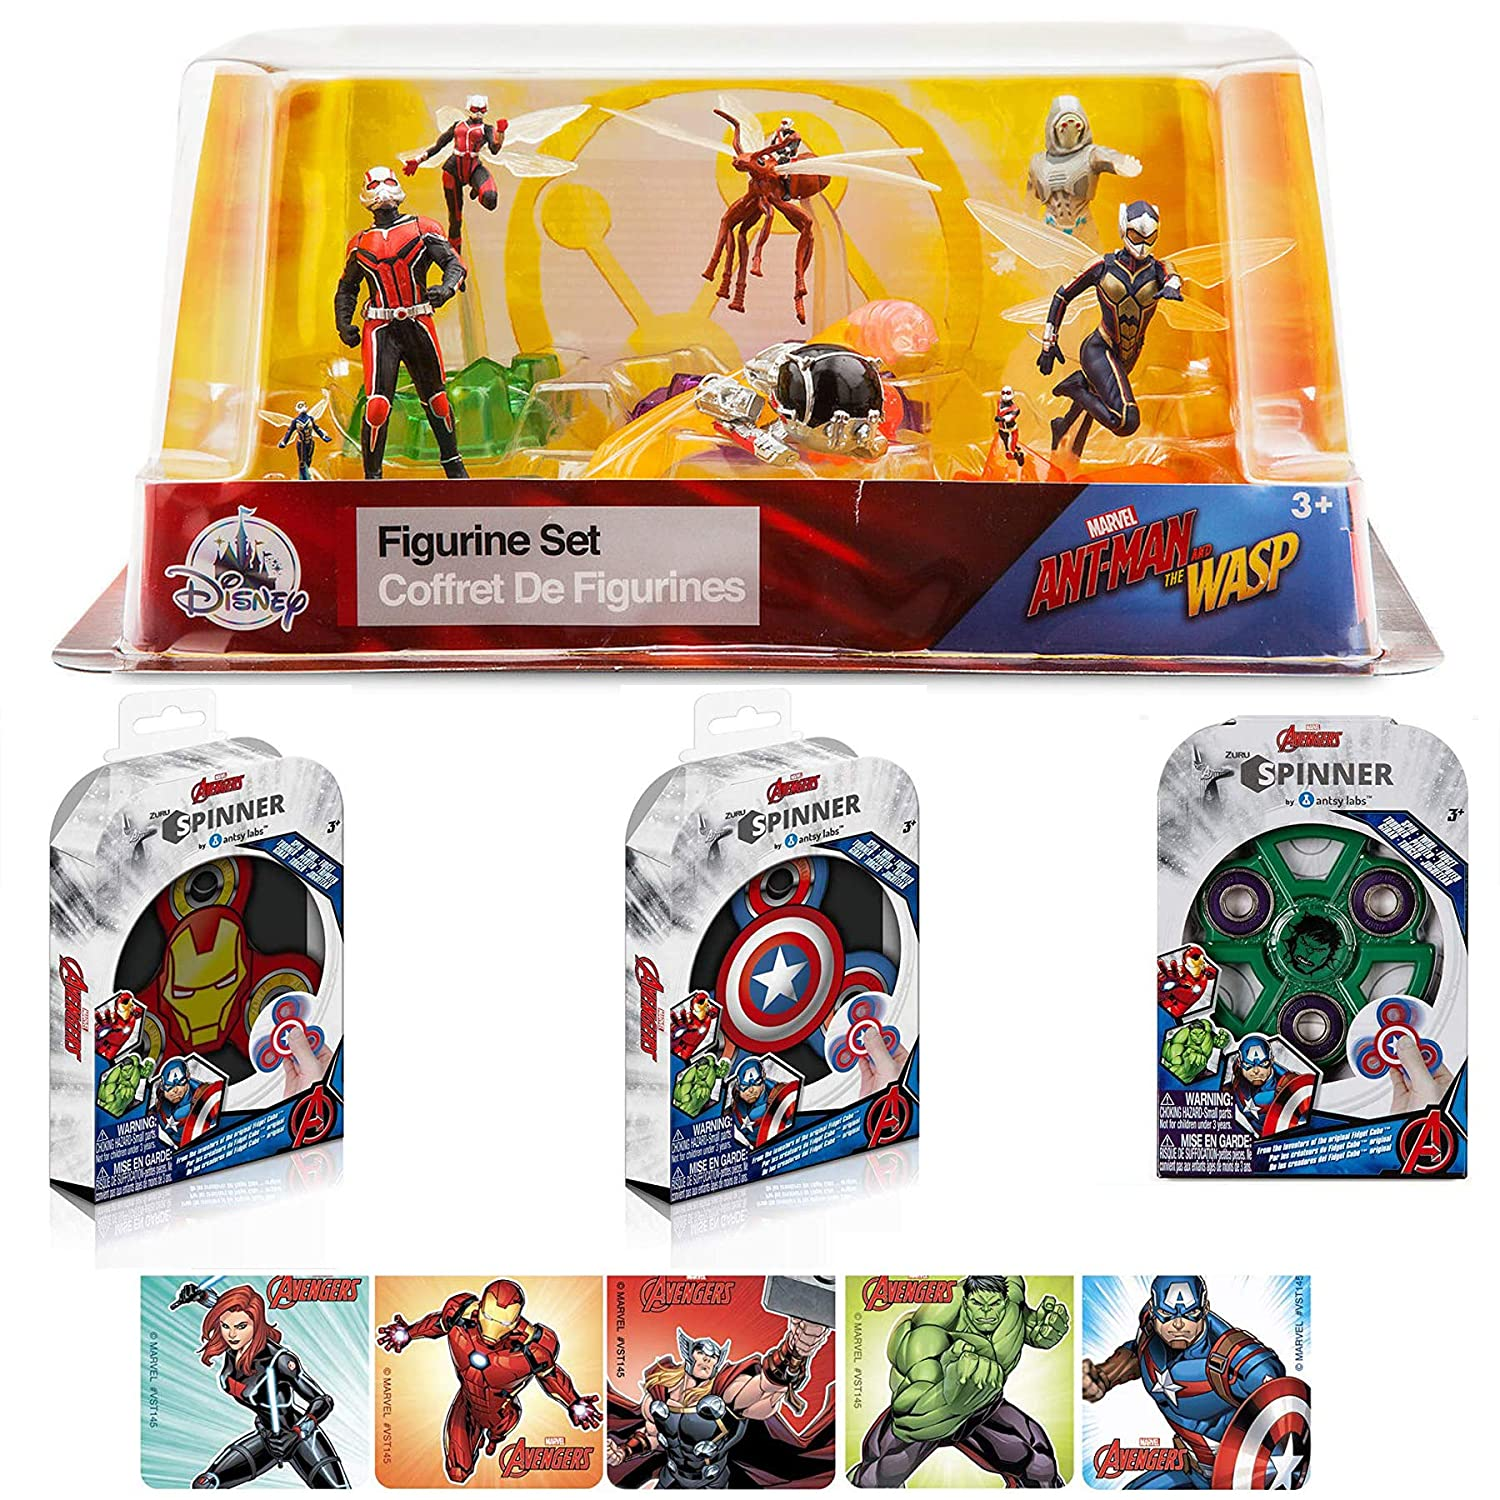 Stickers Magnify The Super Action Fun Marvel Ant-Man /& Wasp 6 Figure Hero Collection Playset QuantumPod /& Avengers Iron Man Hulk /& Captain America Team Toy Pack